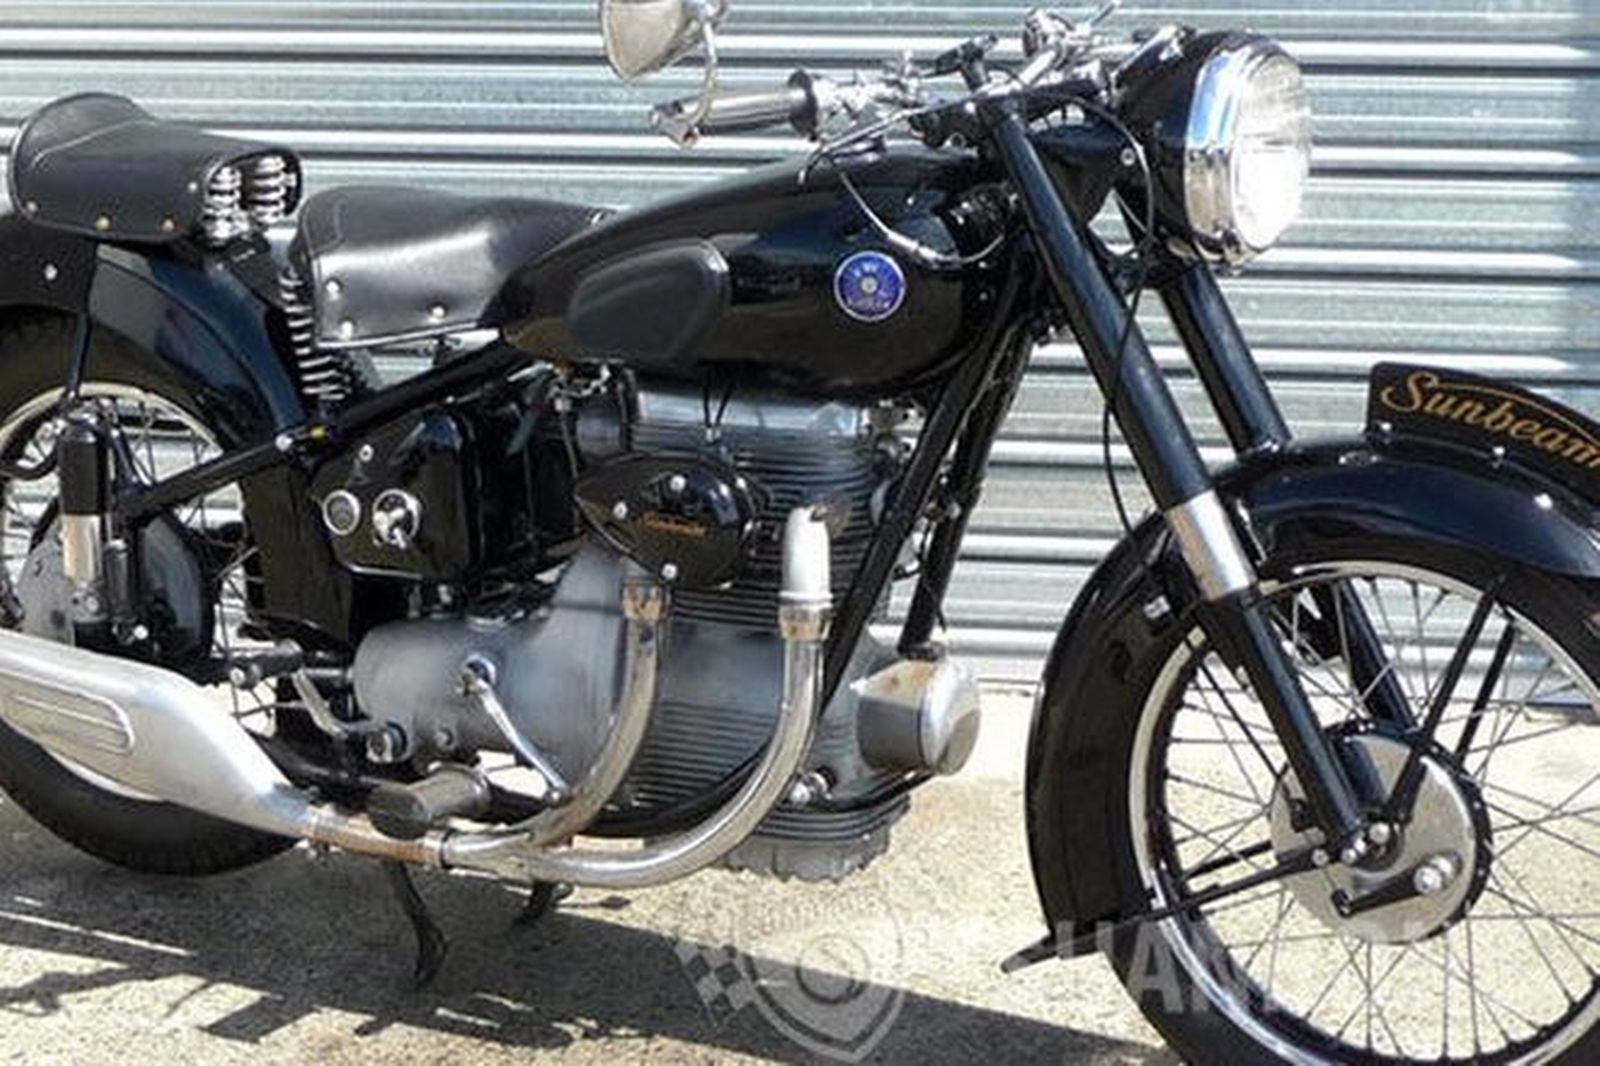 Sunbeam s8 500cc motorcycle auctions lot 8 shannons for Motor vehicle open on saturday